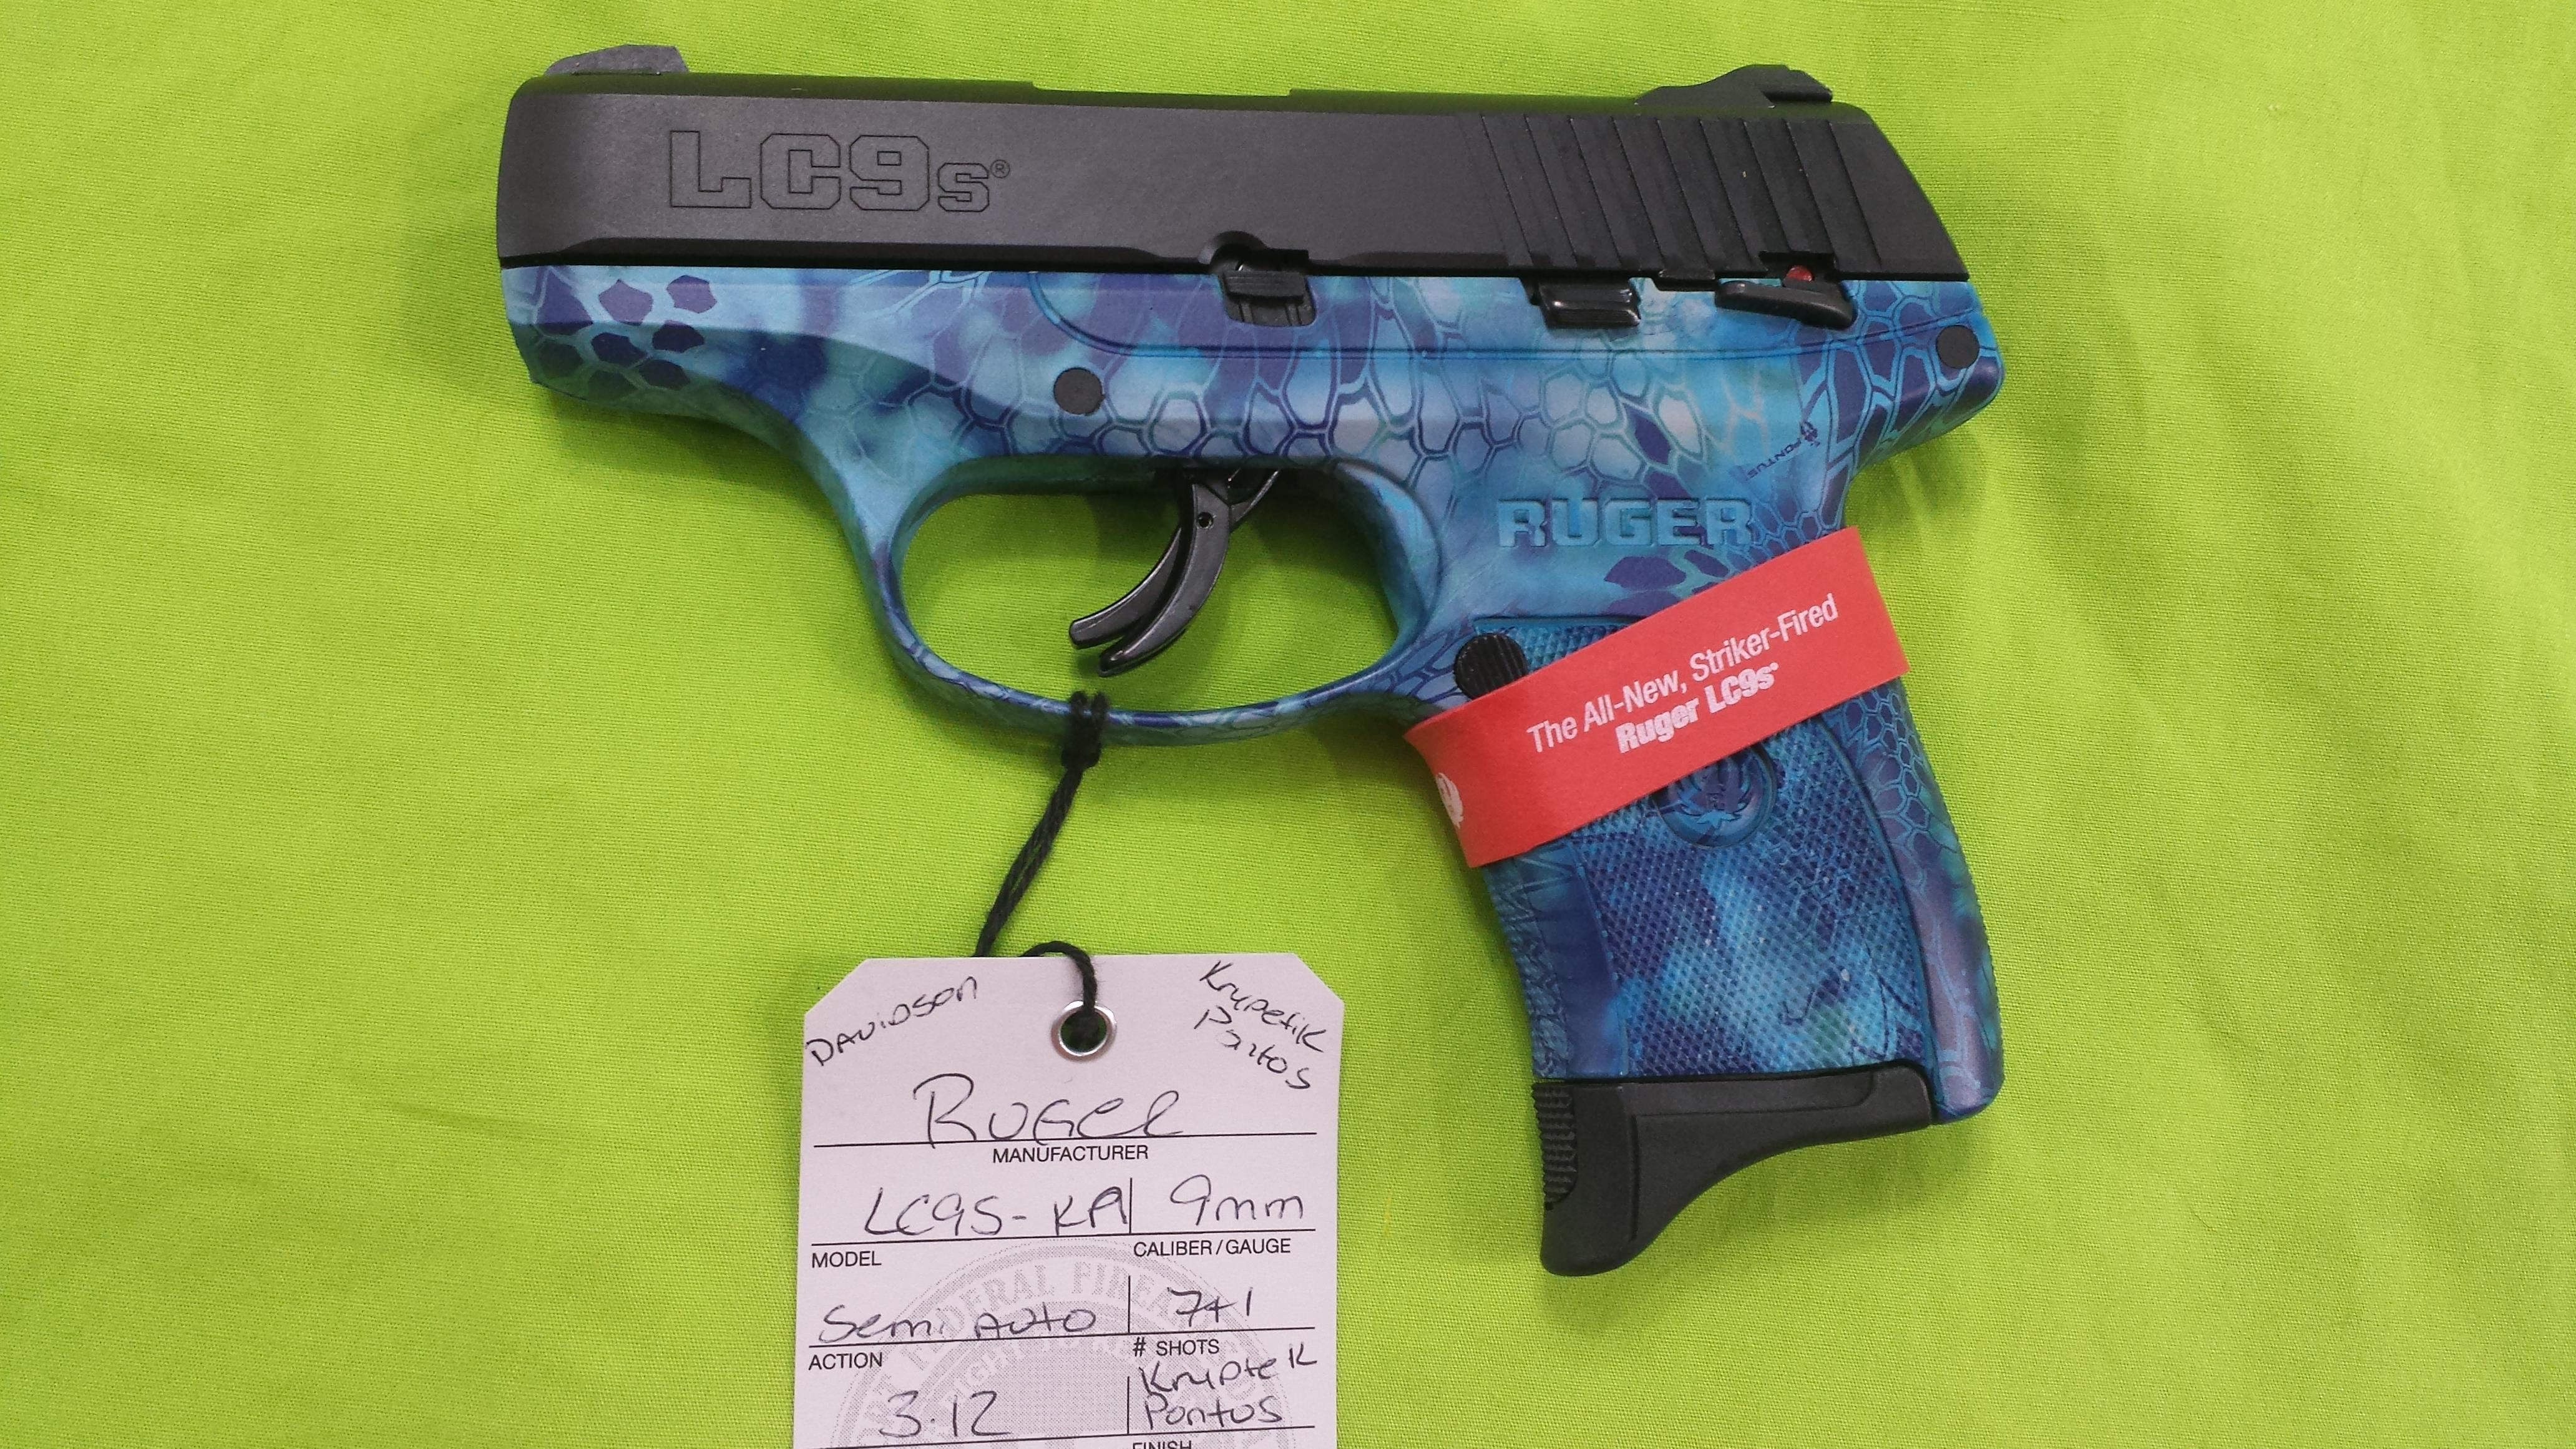 RUGER LC9S KRYPTEK PONTOS BLUE LC9 S 9 9MM 7RD  Guns > Pistols > Ruger Semi-Auto Pistols > LC9